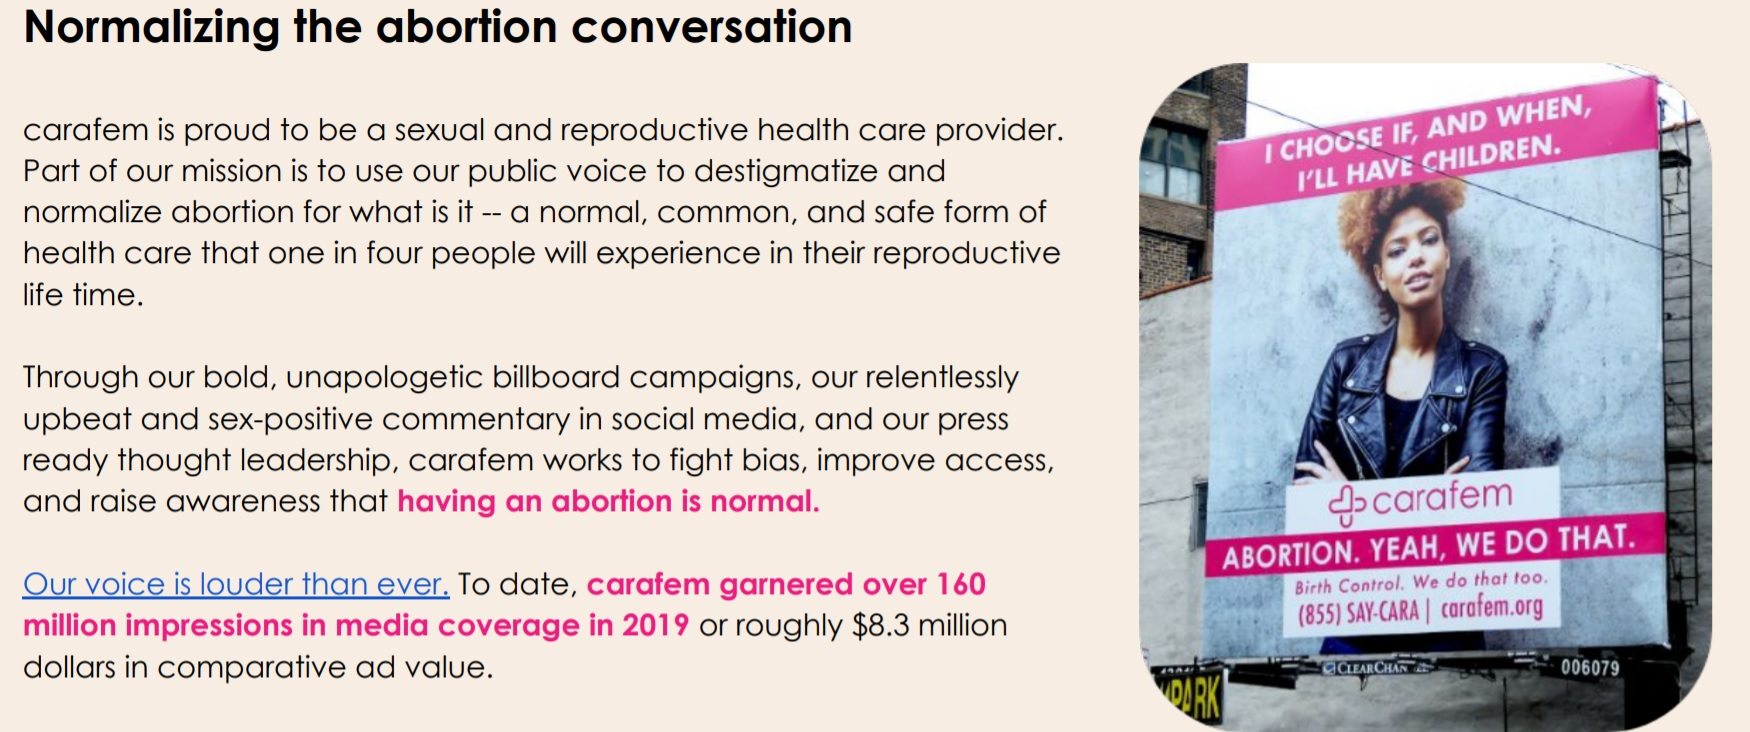 Carafem wants to normalize abortion Image 2020 Carafem Annual Report